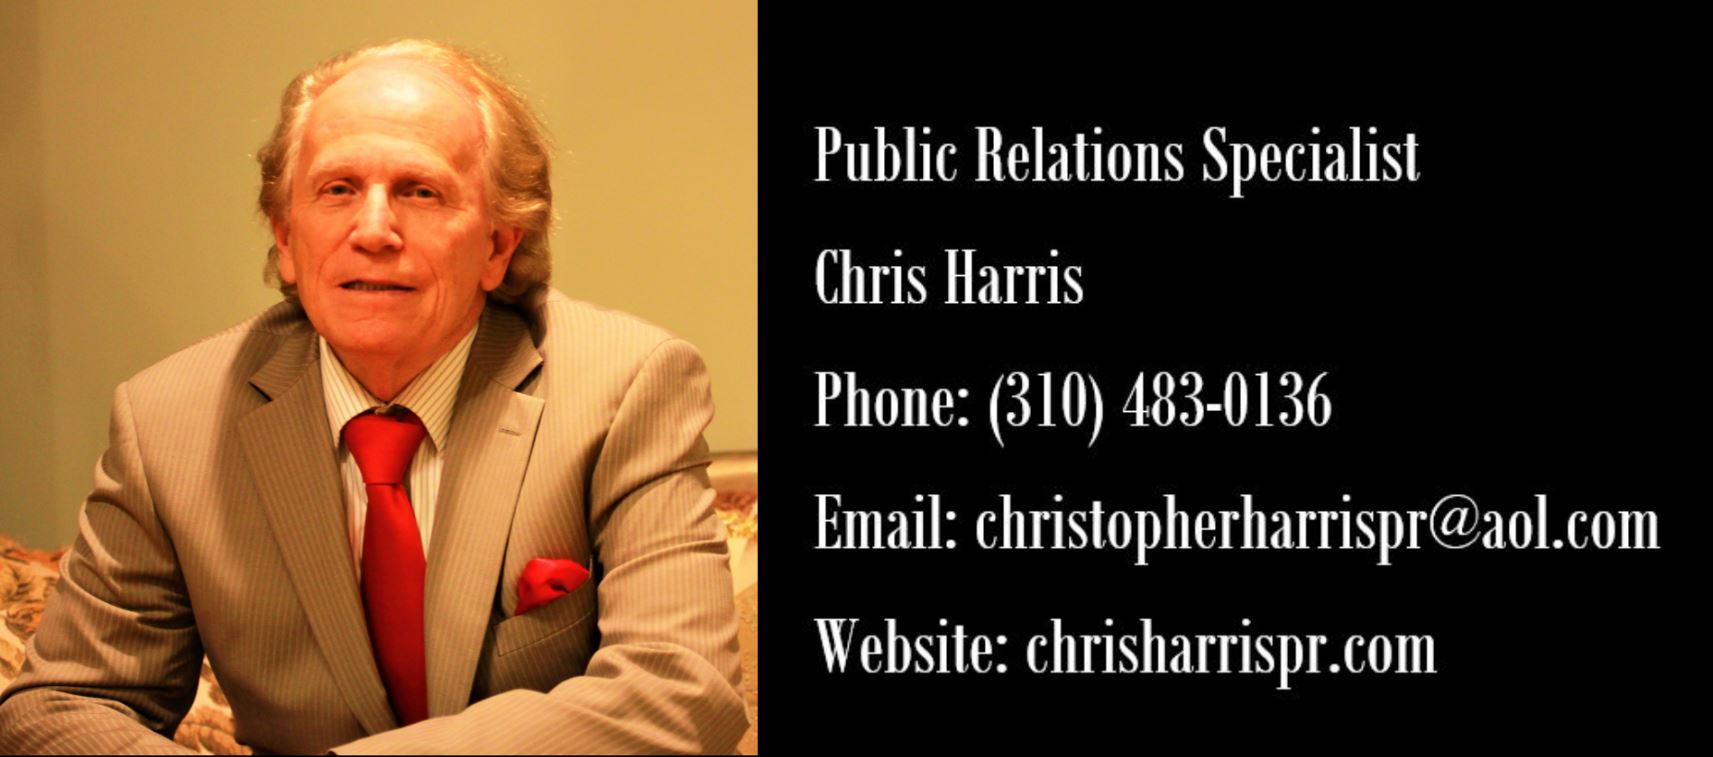 Chris Harris Publicist Contact Info Image